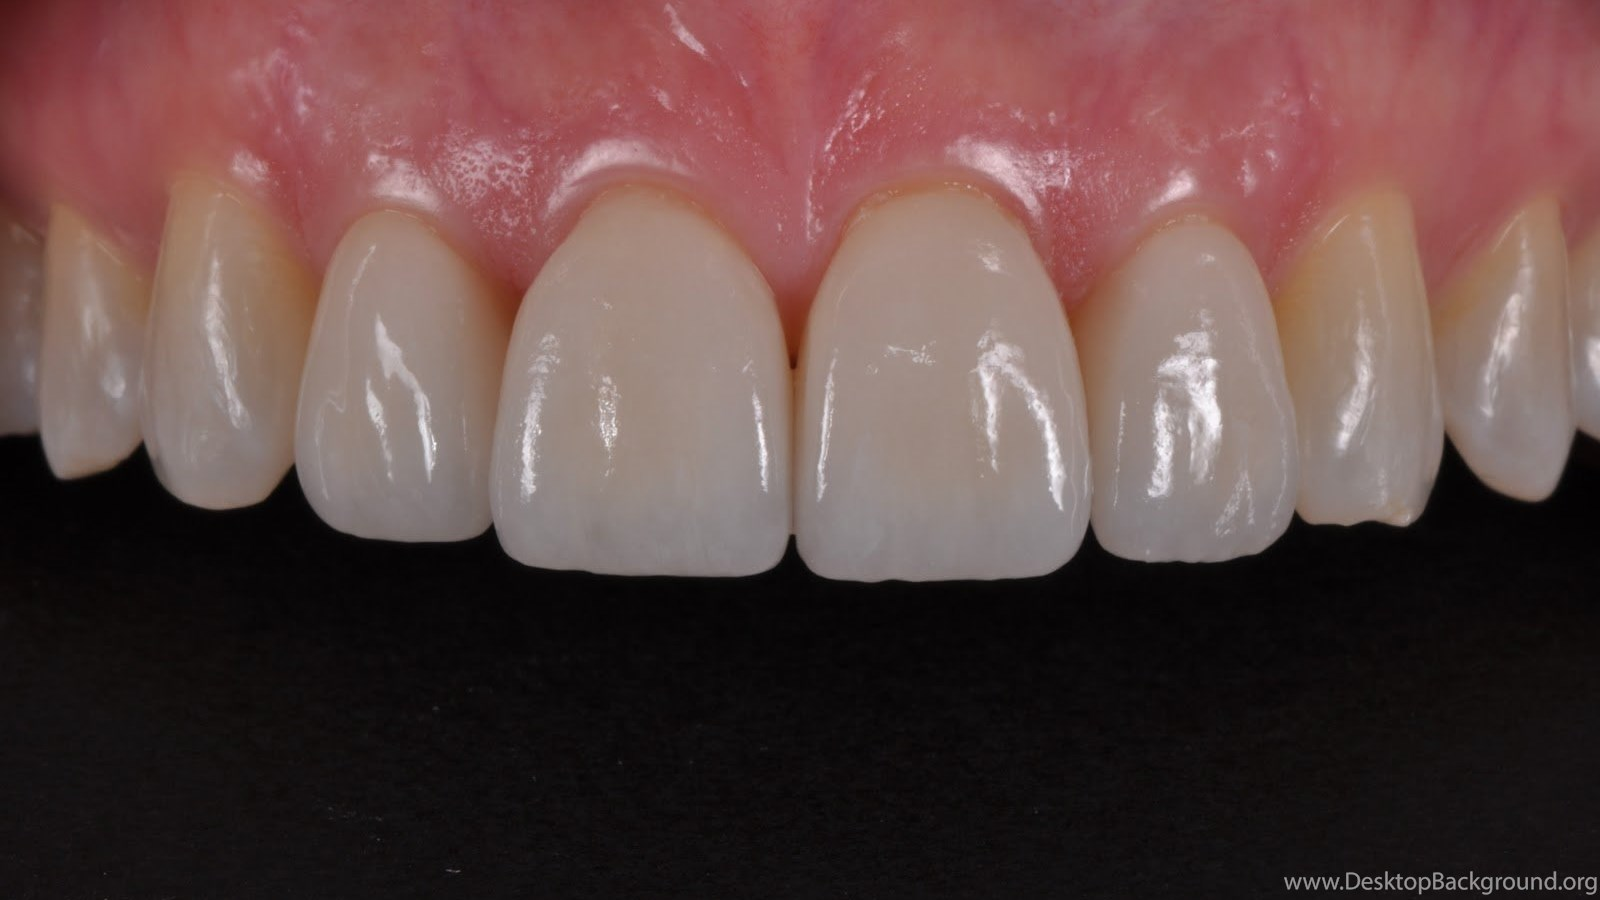 Dental Photography Pearls For Better Images Instantly An Easy Desktop Background